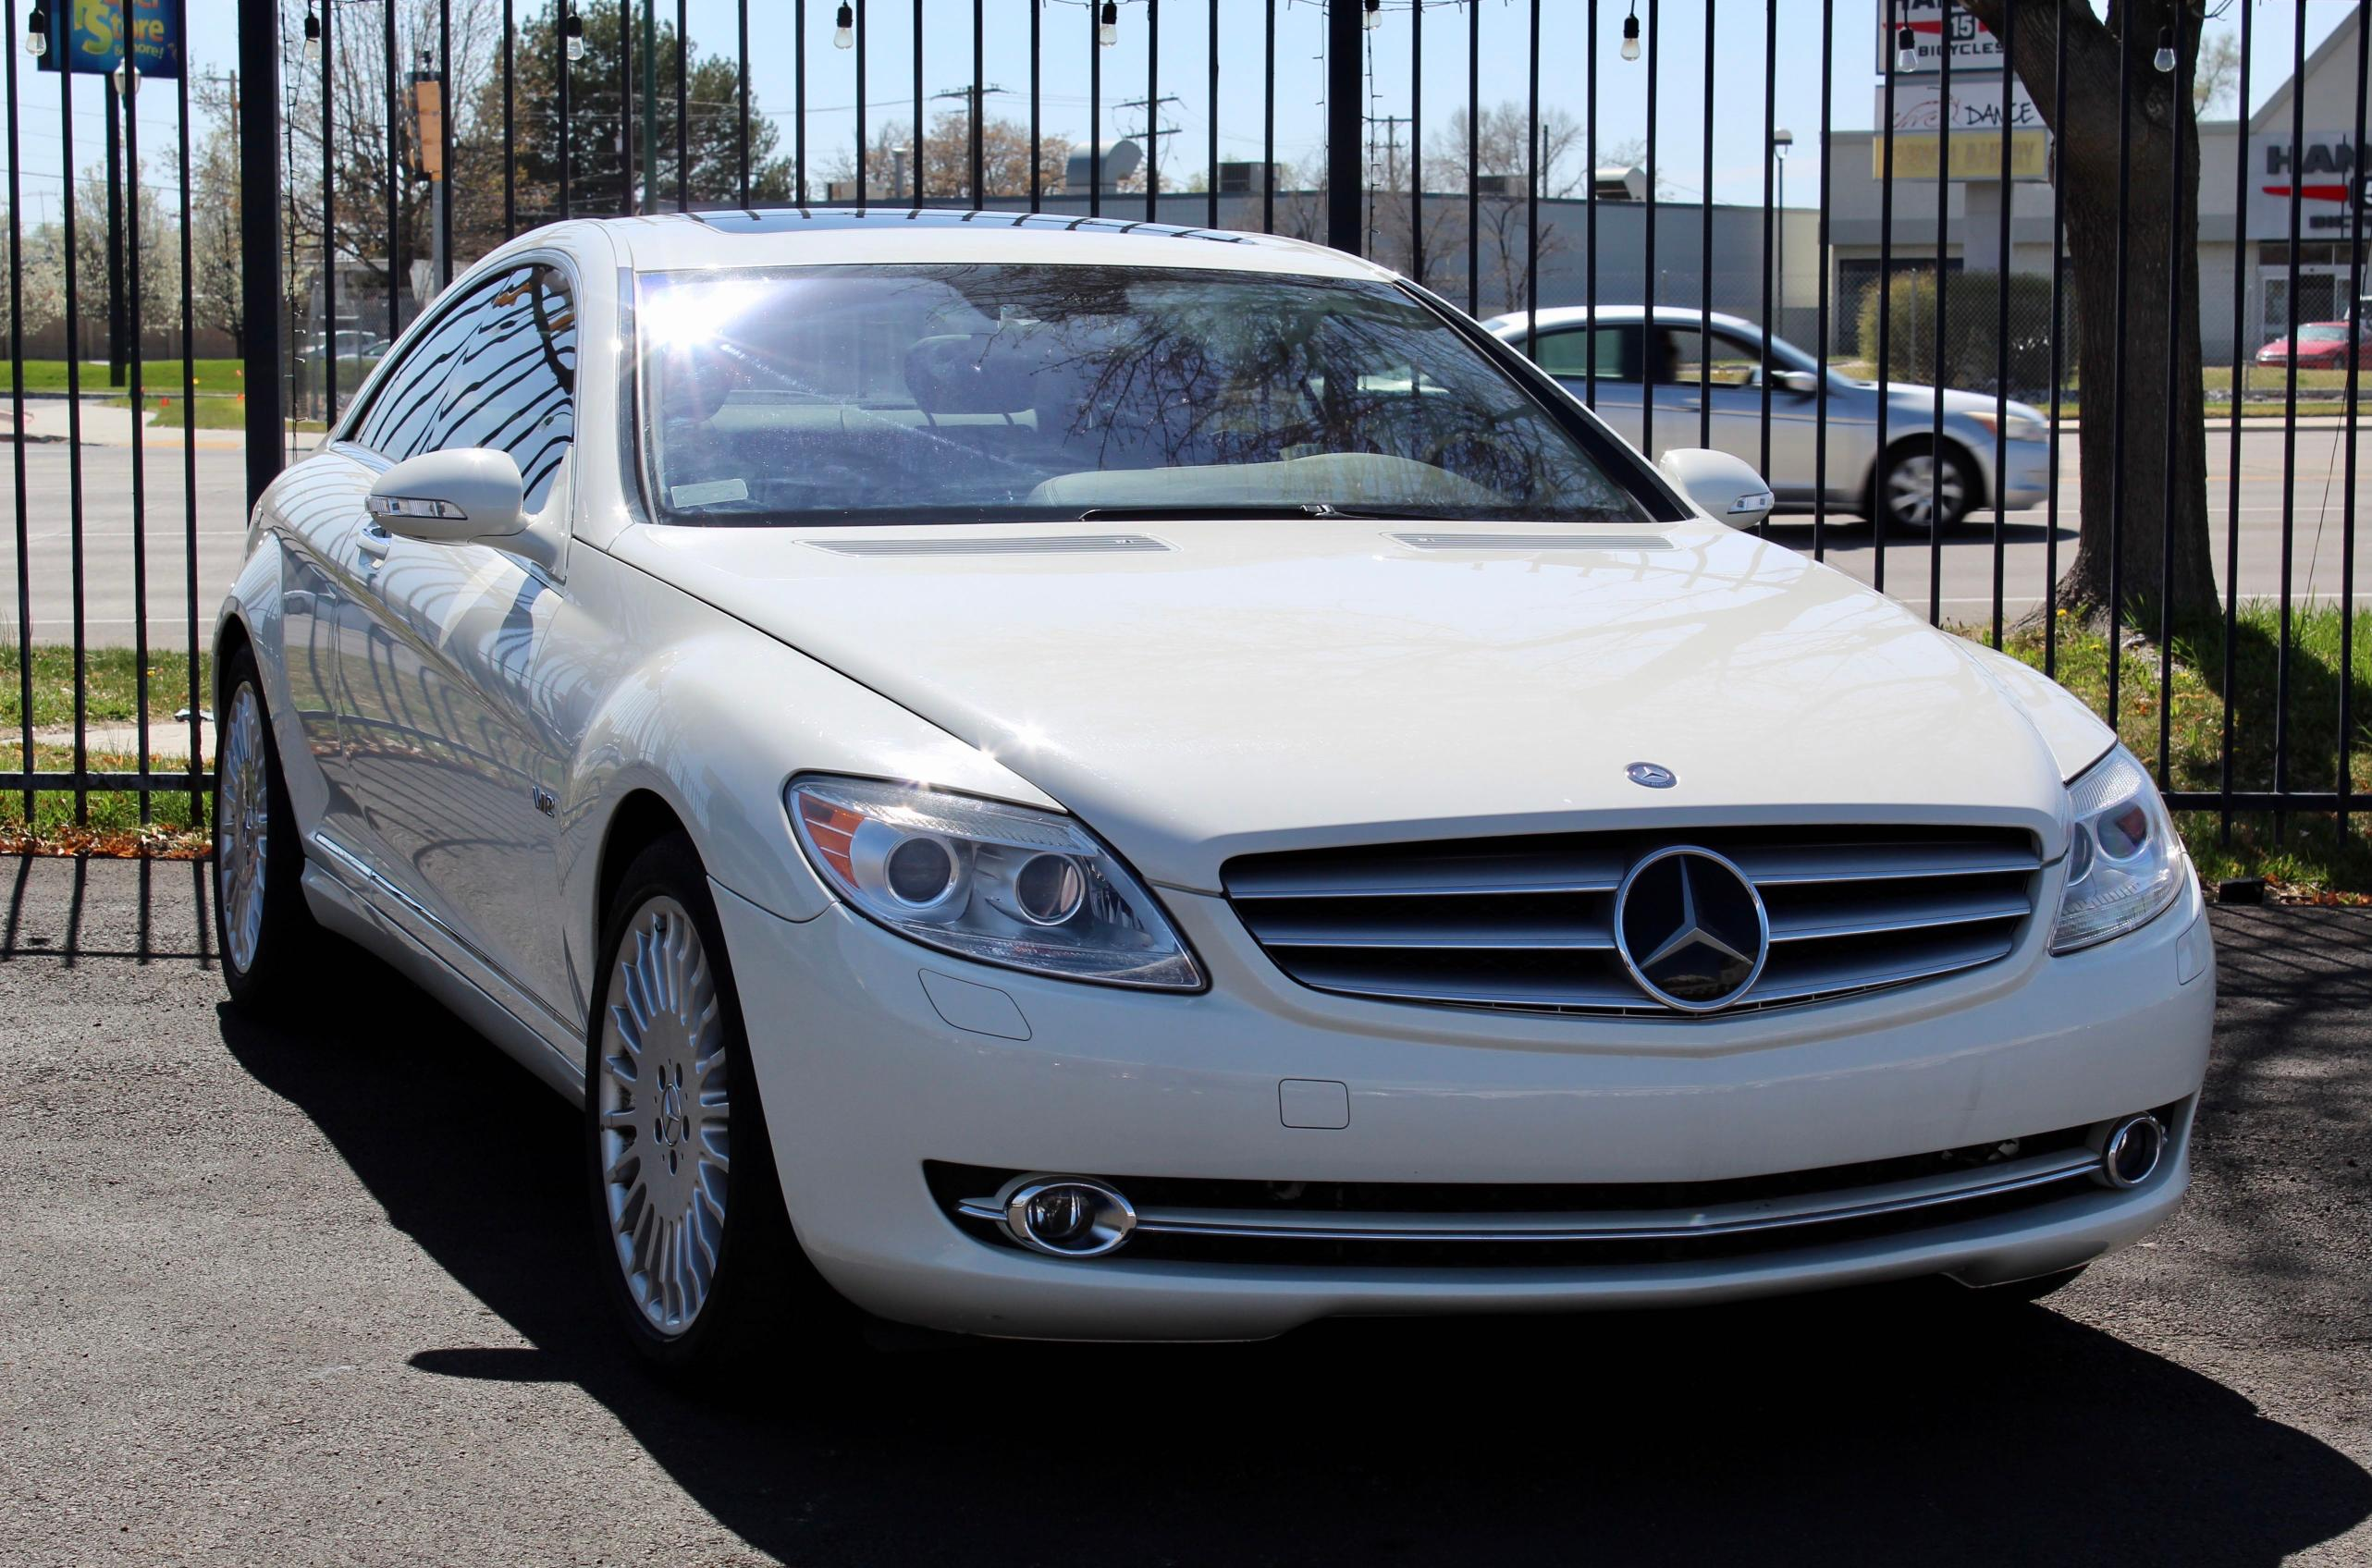 2007 Mercedes-Benz CL 600 for sale in Magna, UT